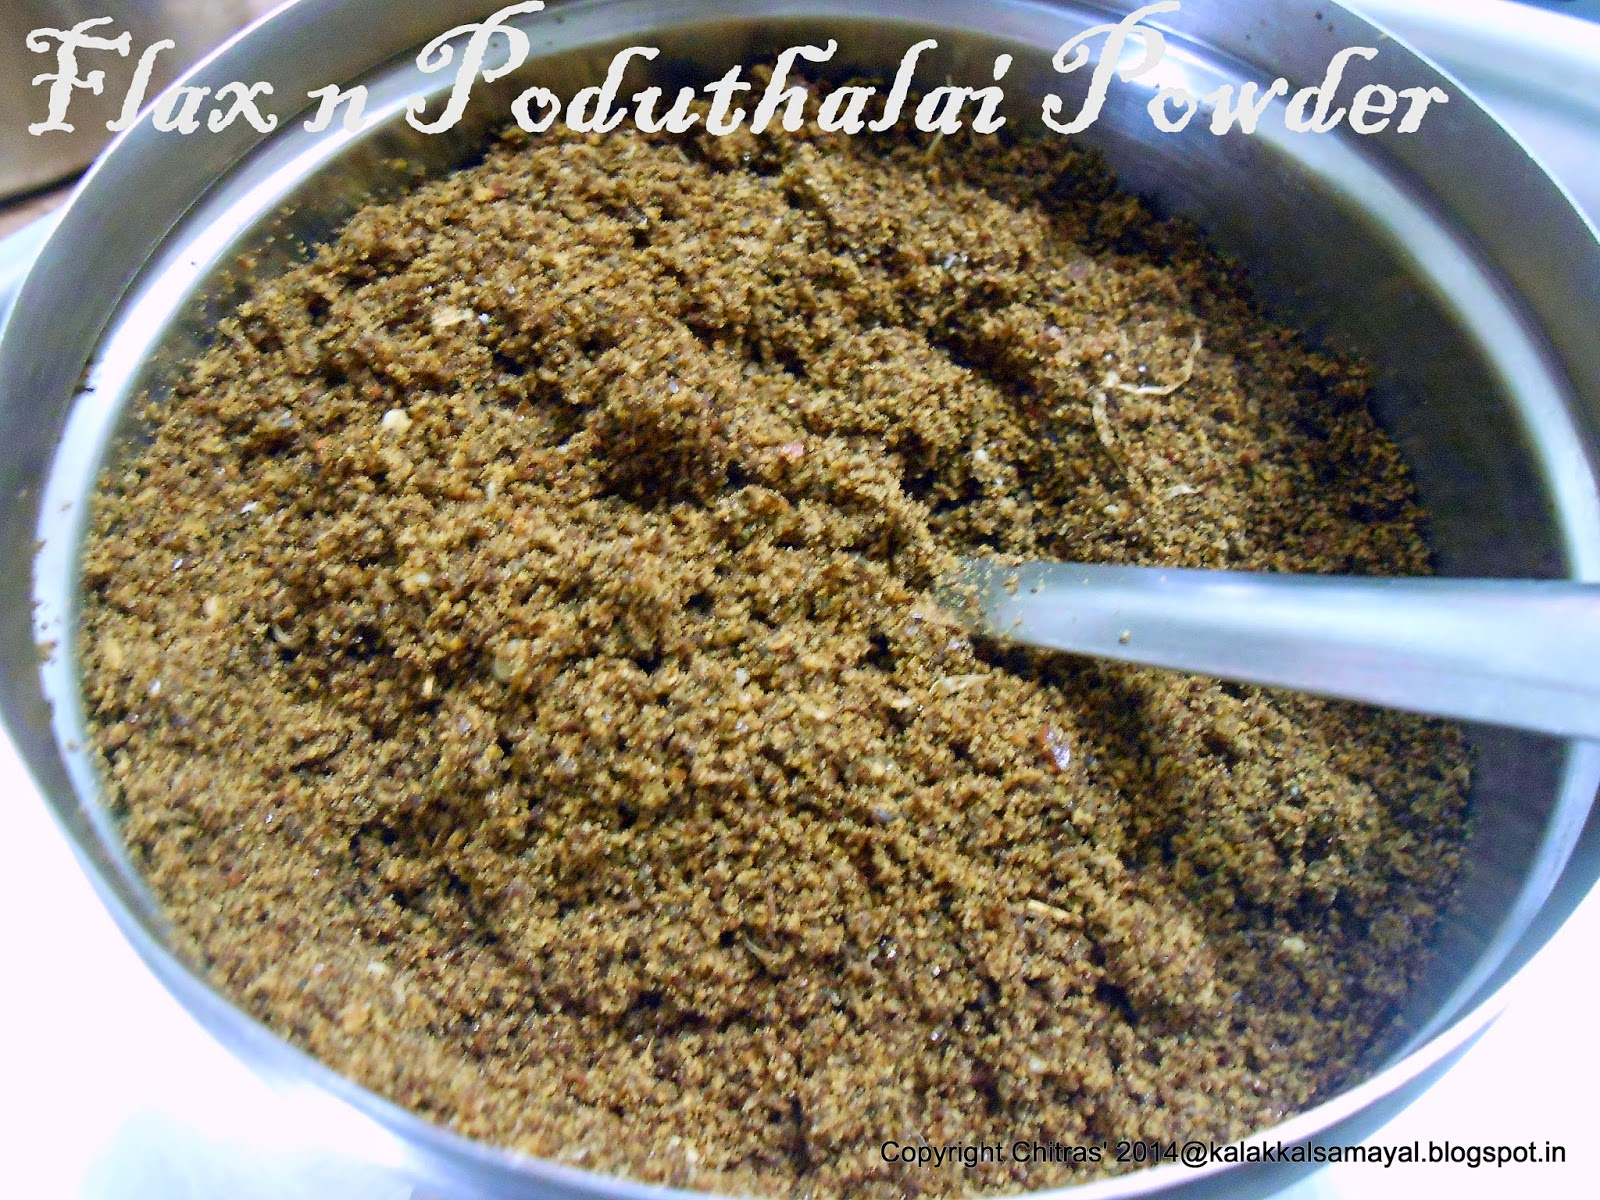 Flax and Poduthalai Powder